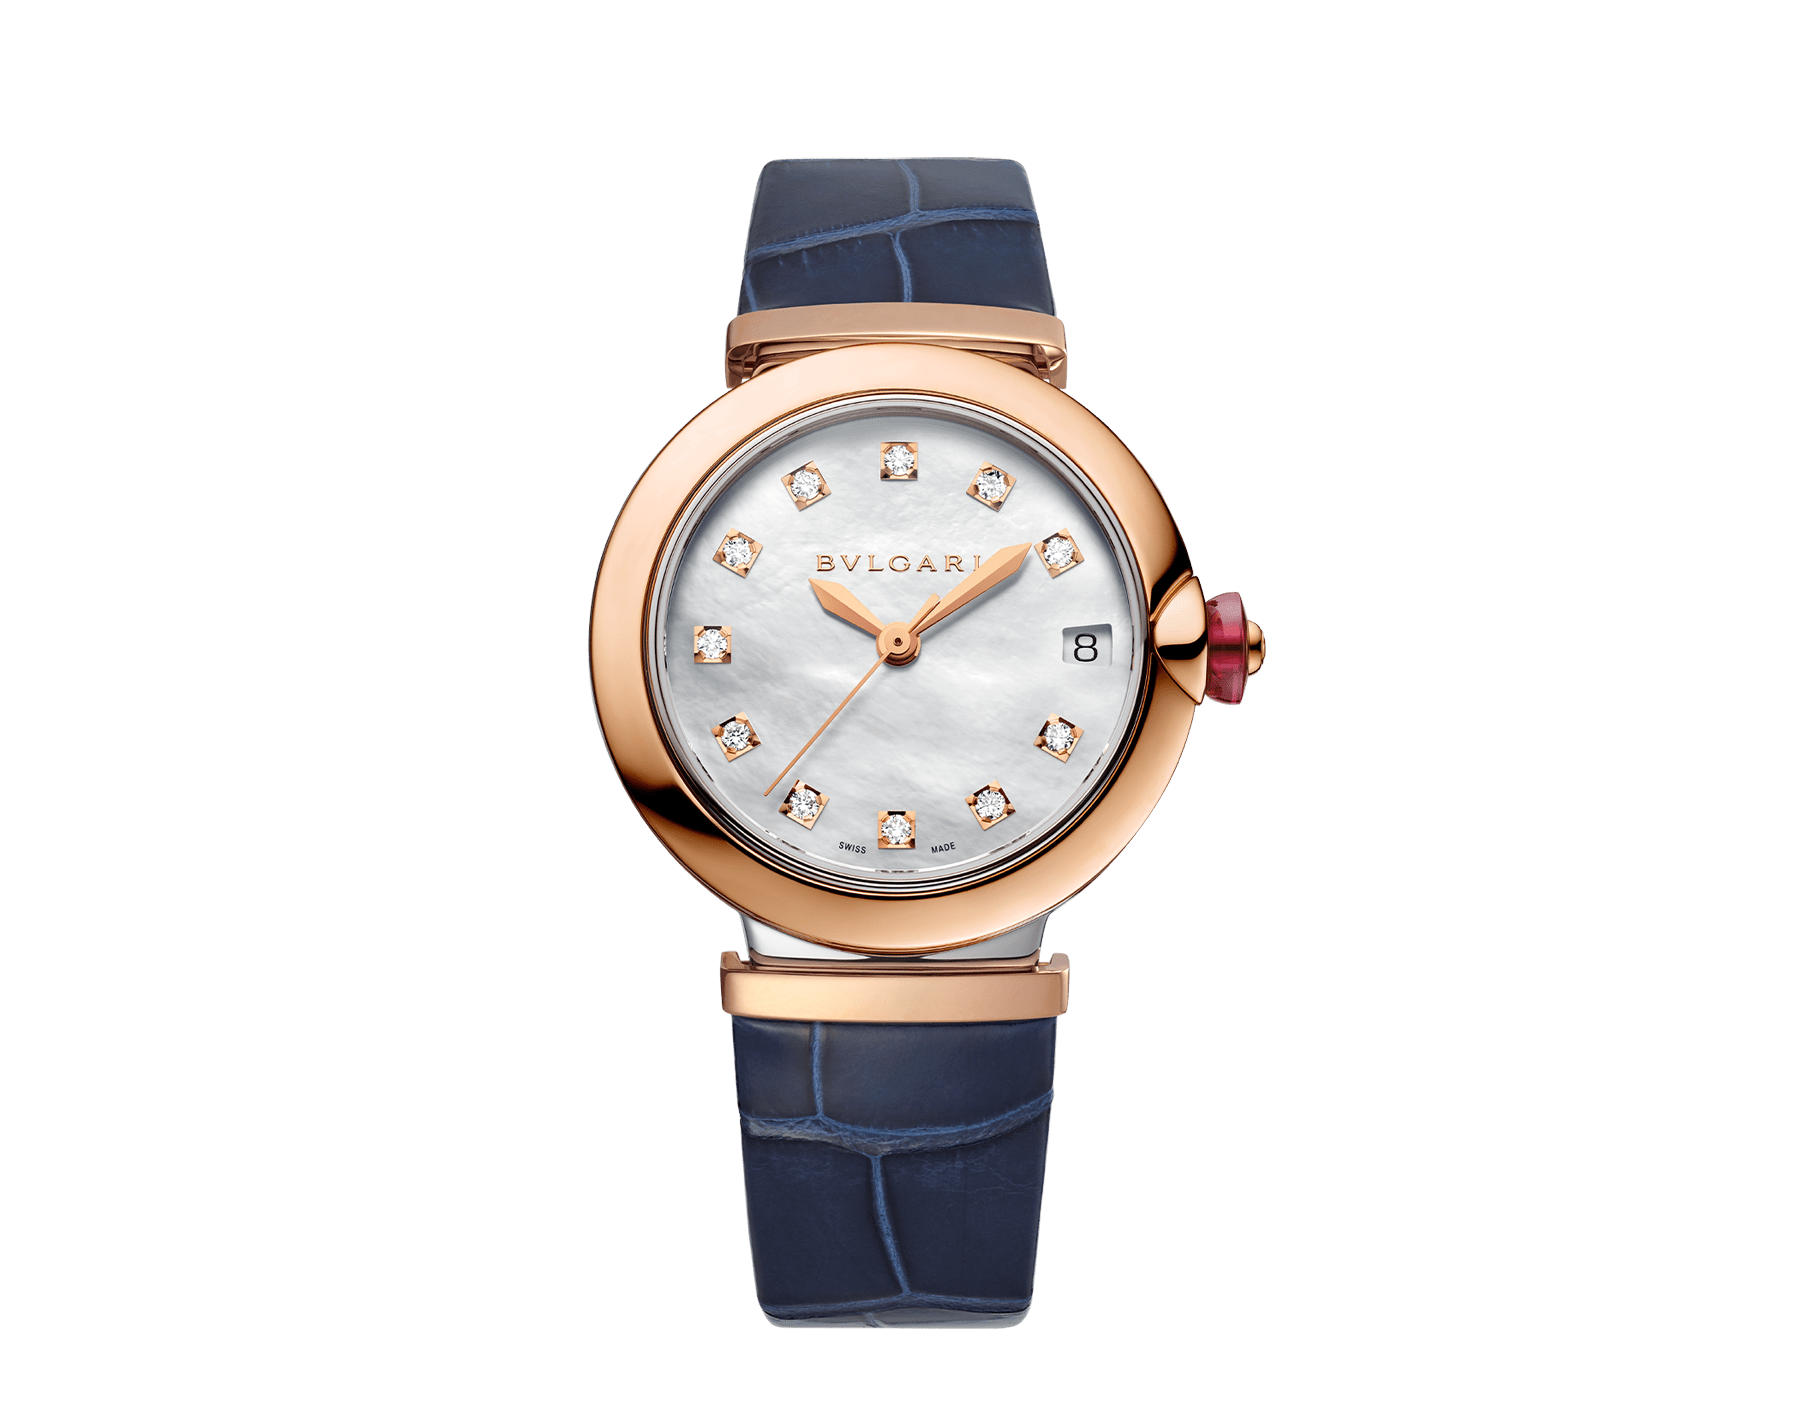 LVCEA watch with 18 kt rose gold and stainless steel case, white mother-of-pearl dial set with diamond indexes, date aperture and blue alligator bracelet. 102638 image 1